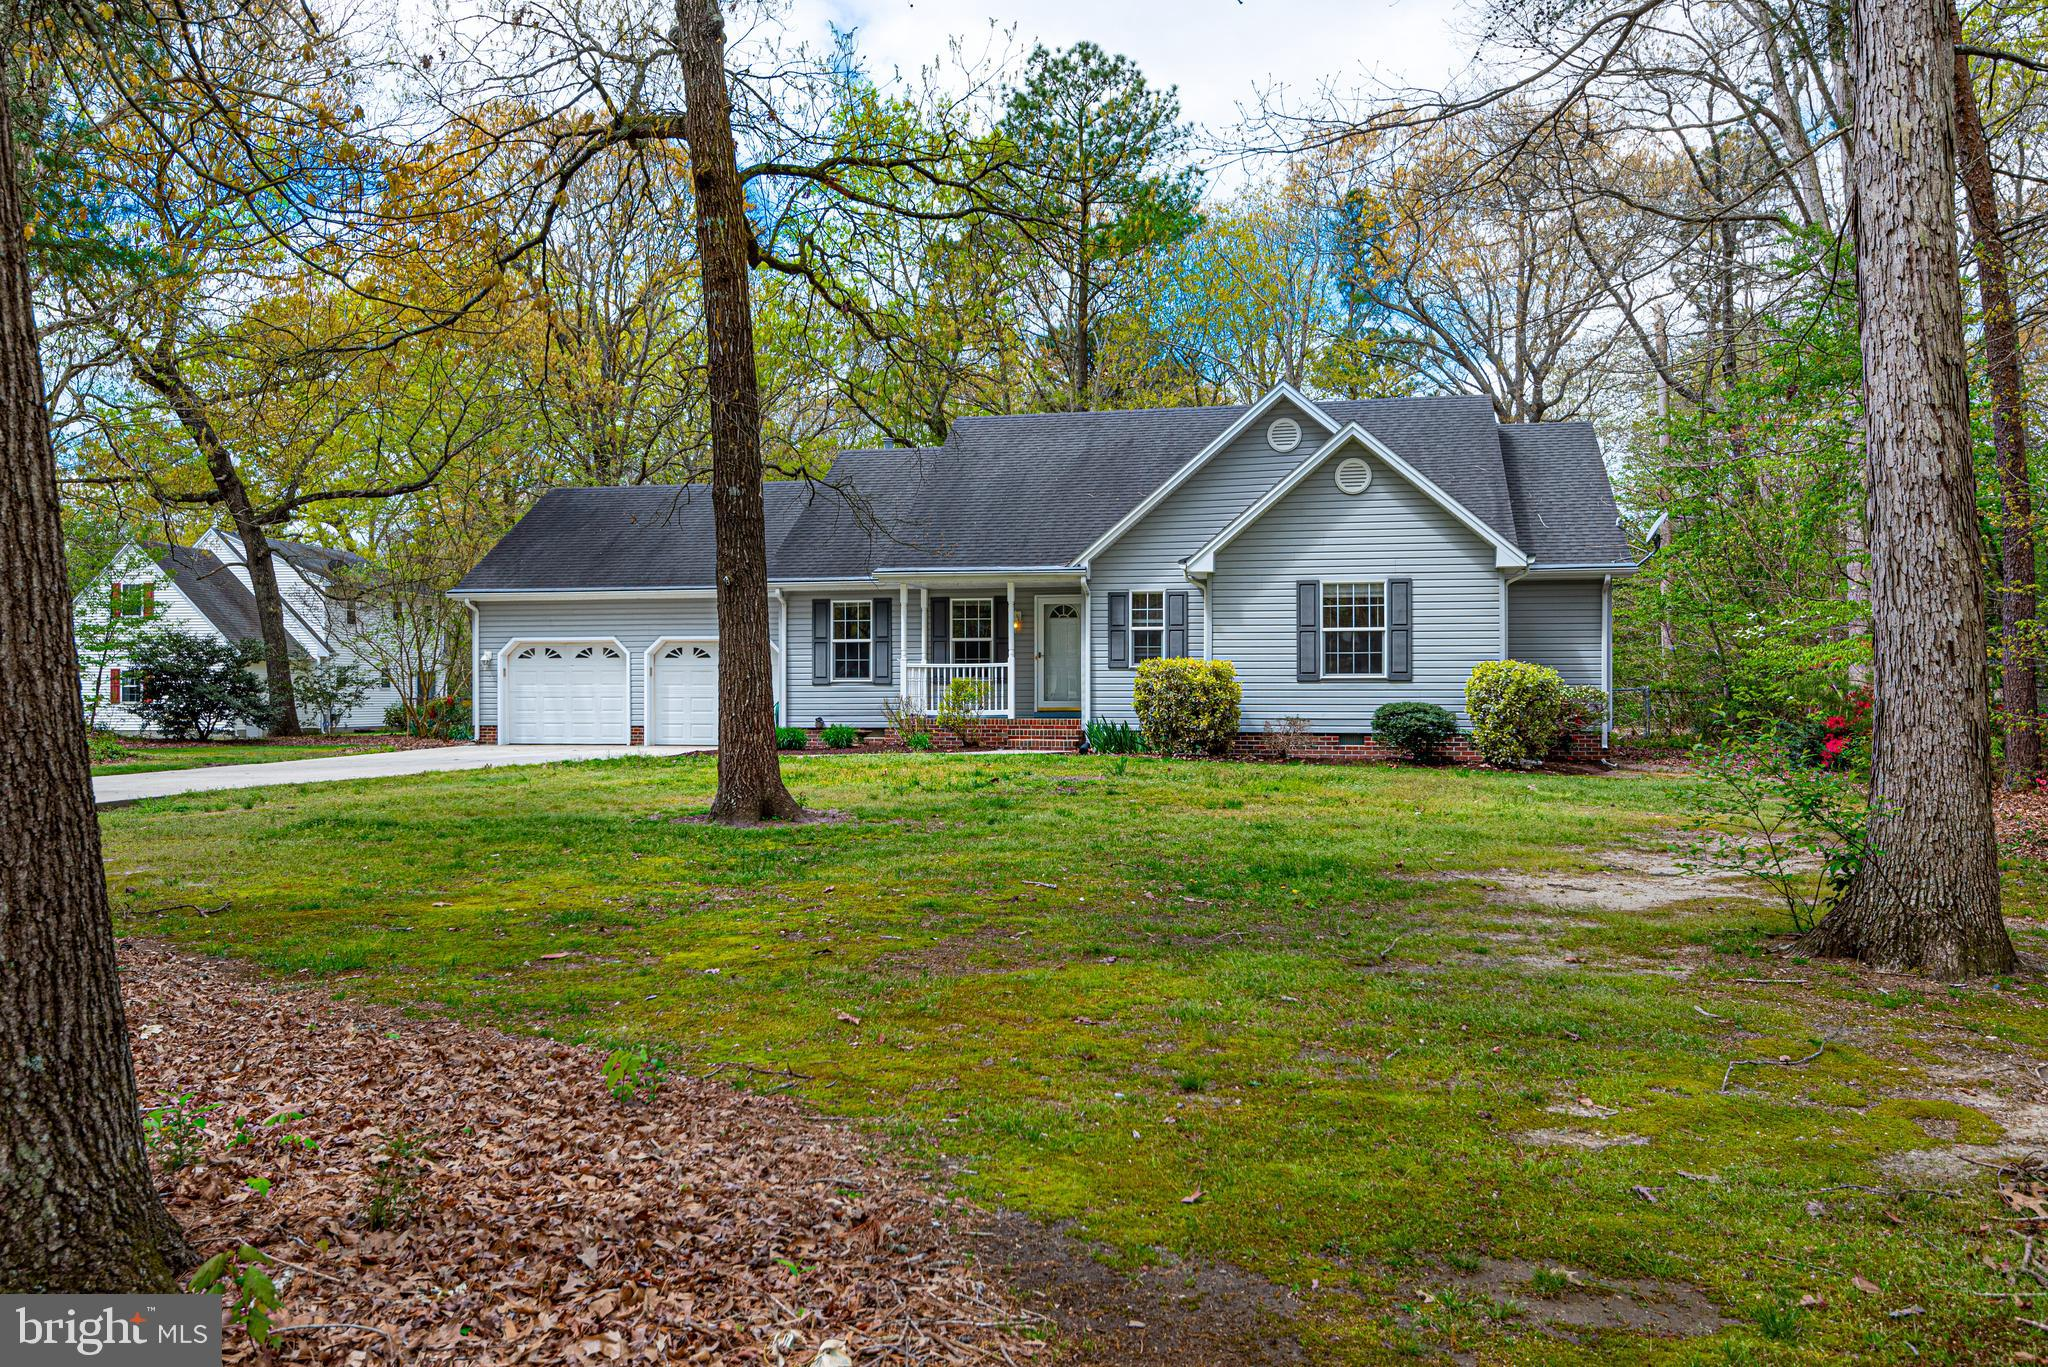 Check out this beautiful 3BR, 2BA home in the Canterbury neighborhood.  The home has an updated kitc